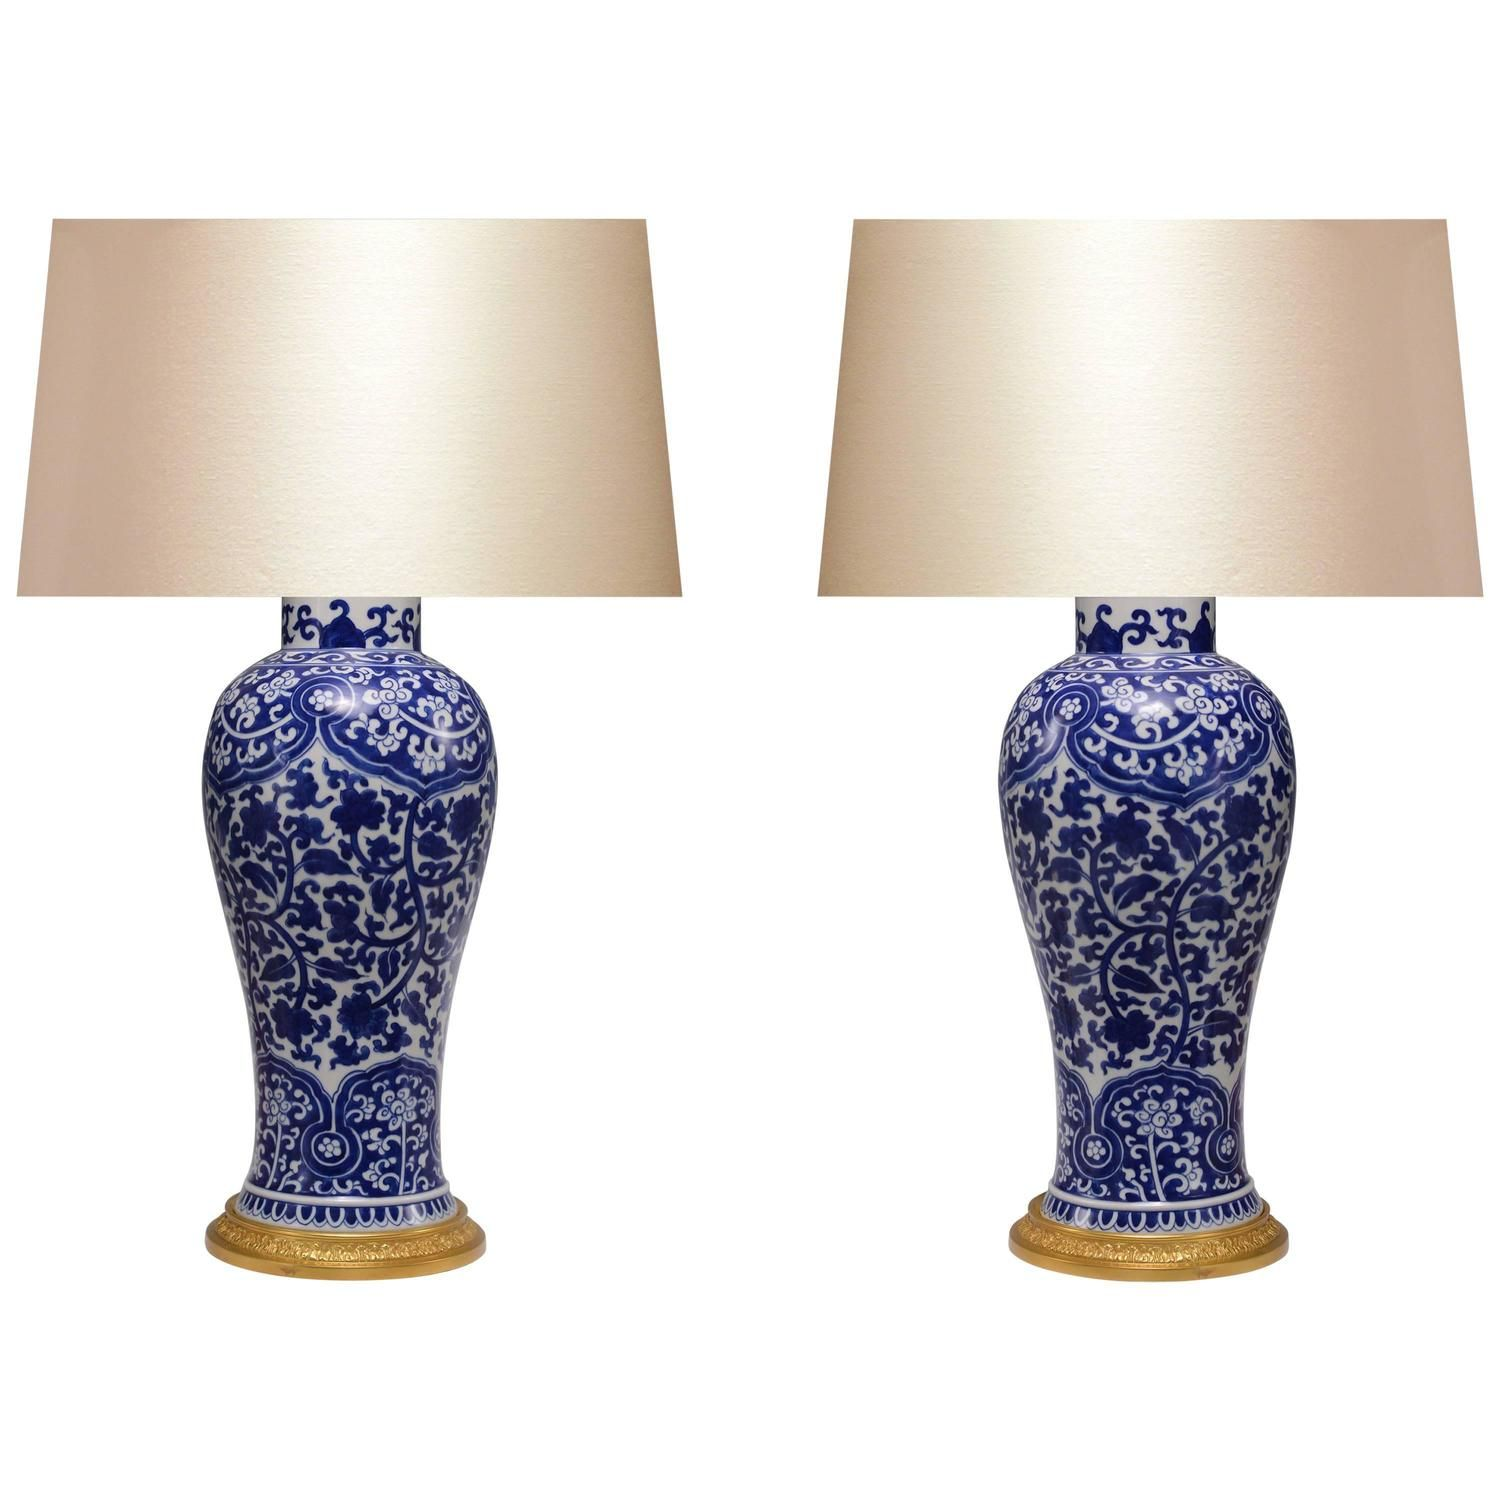 Pair Of Blue And White Porcelain Lamps Porcelain Lamp White Porcelain Lamp